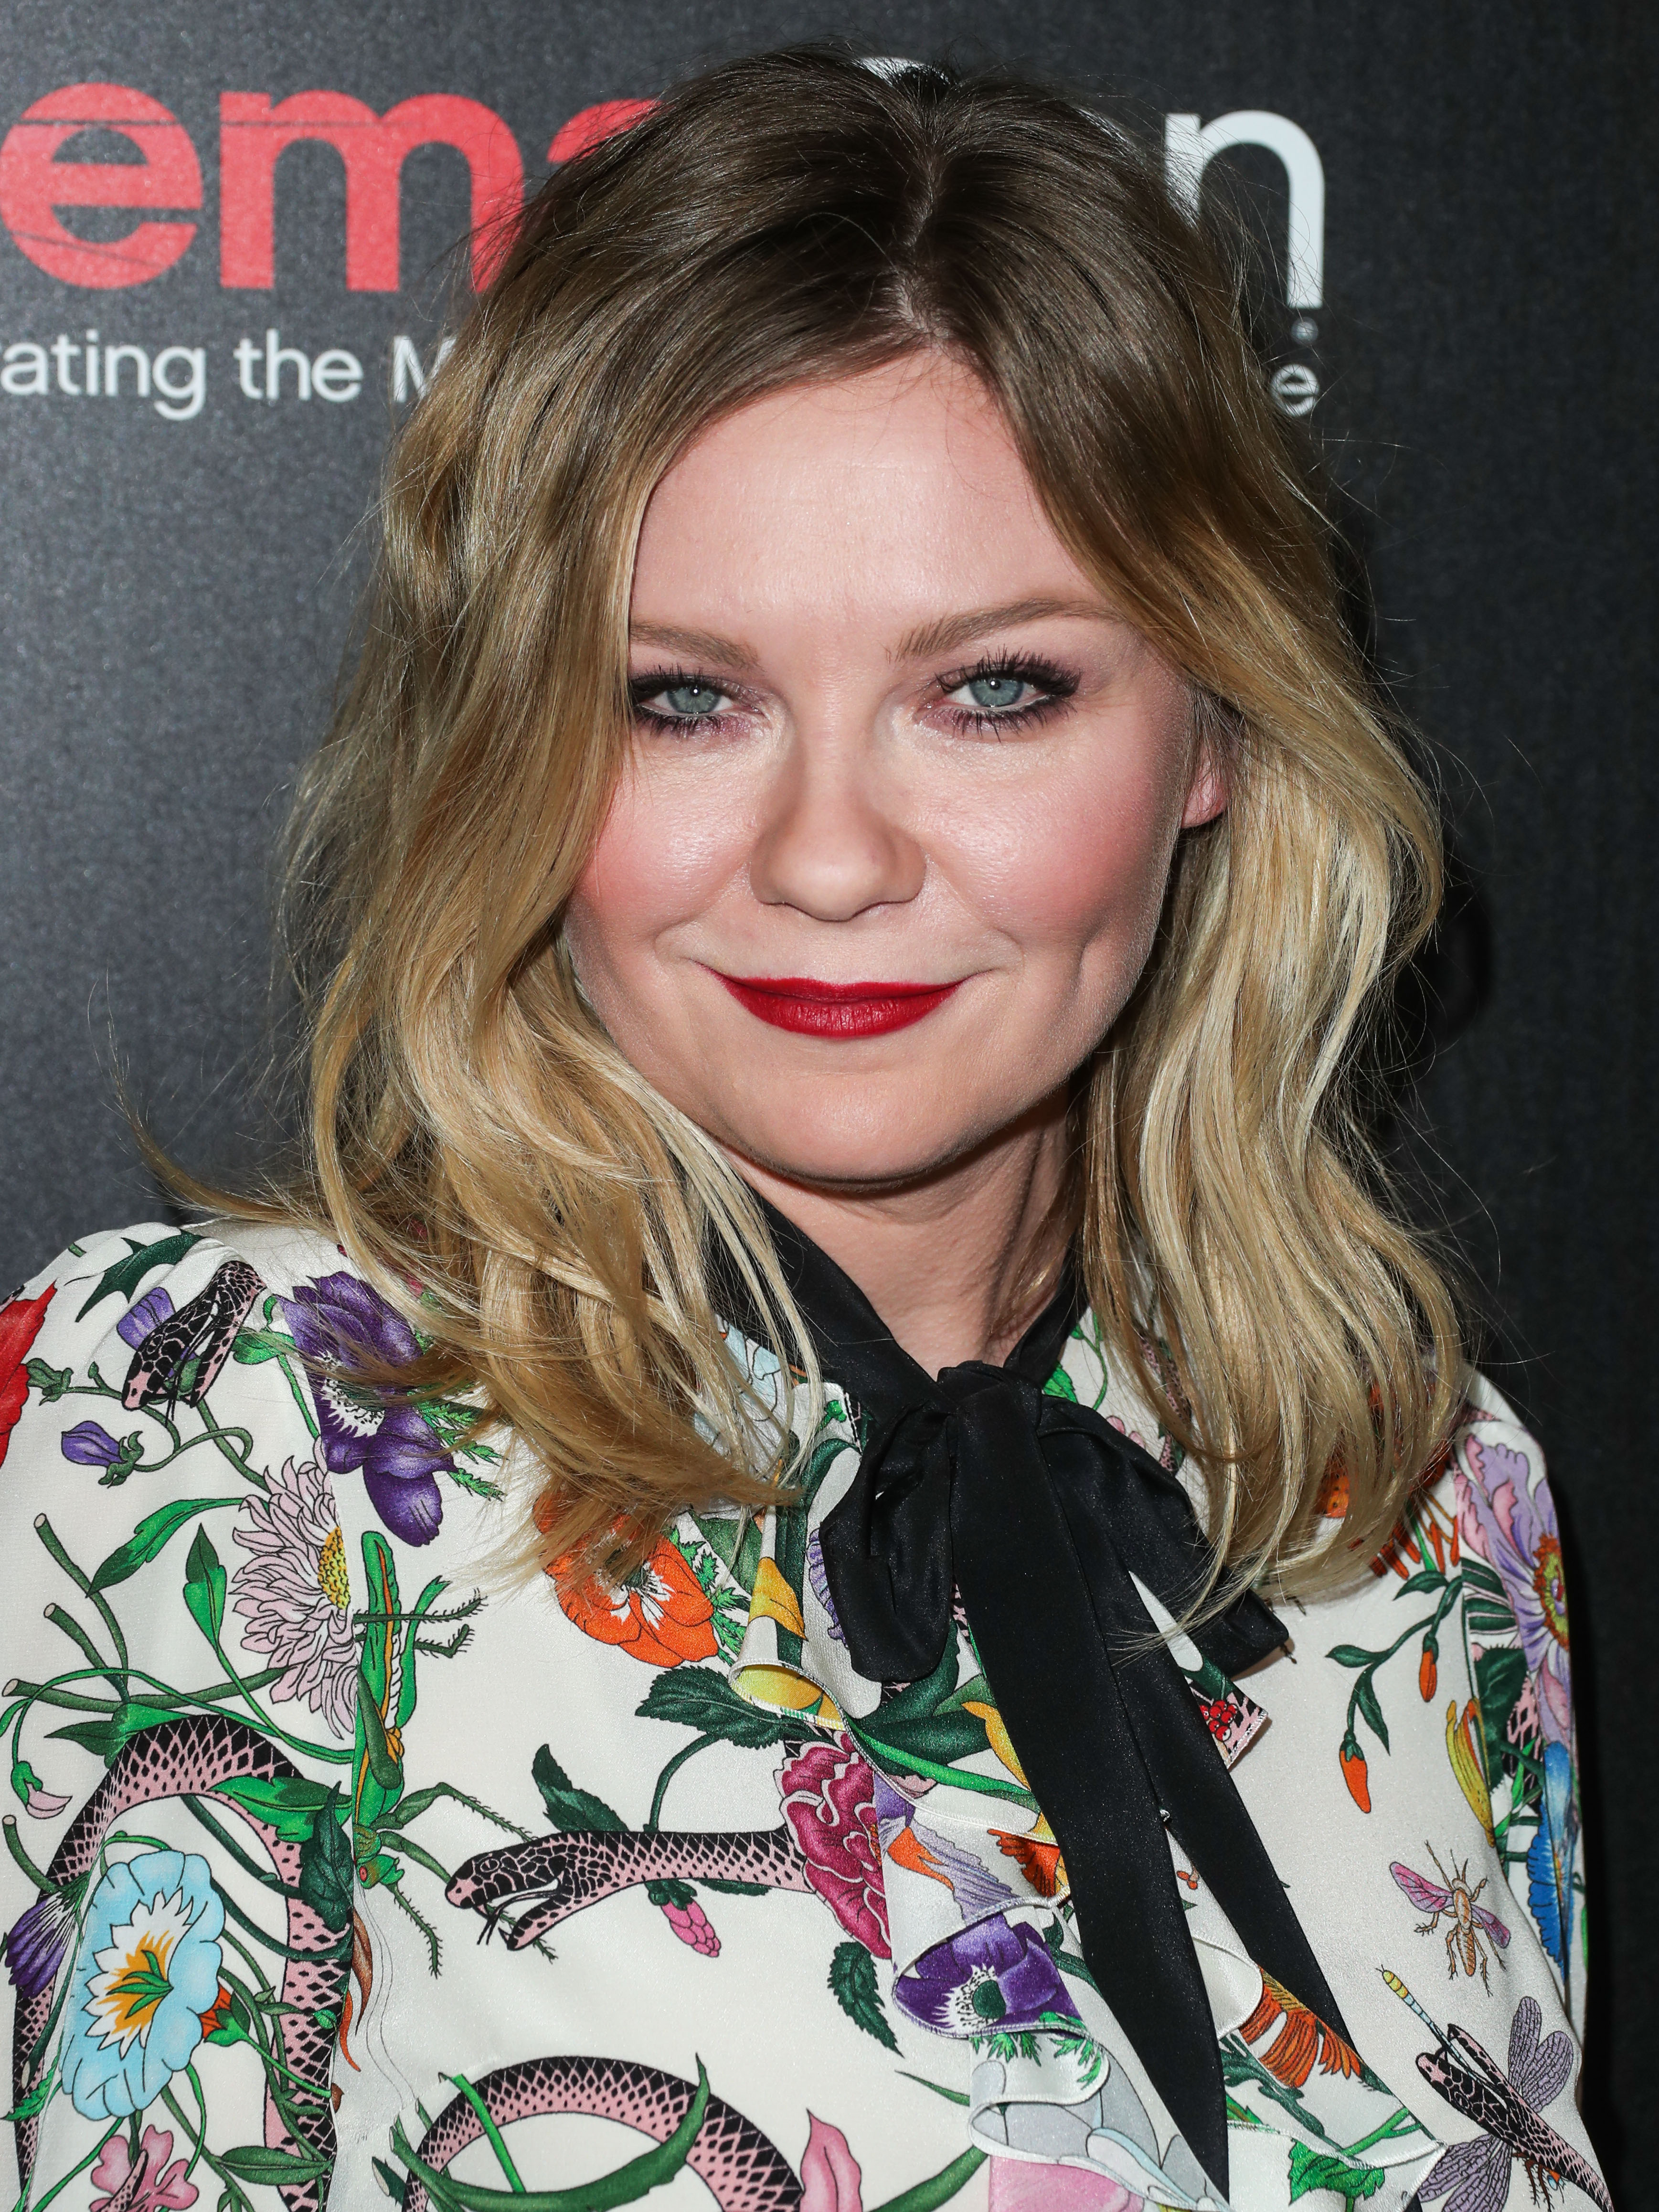 LAS VEGAS, NV, USA - MARCH 29: Actress Kirsten Dunst arrives at the CinemaCon 2017 - Focus Features Luncheon And Studio Program Celebrating 15 Years held at the Octavius Ballroom at Caesars Palace during CinemaCon, the official convention of the National Association of Theatre Owners on March 29, 2017 in Las Vegas, Nevada, United States. (Photo by Xavier Collin/Image Press Agency/Splash News) <P> Pictured: Kirsten Dunst <B>Ref: SPL1470411  290317  </B><BR/> Picture by: Xavier Collin/IPA/Splash News<BR/> </P><P> <B>Splash News and Pictures</B><BR/> Los Angeles:310-821-2666<BR/> New York:212-619-2666<BR/> London:870-934-2666<BR/> <span id=